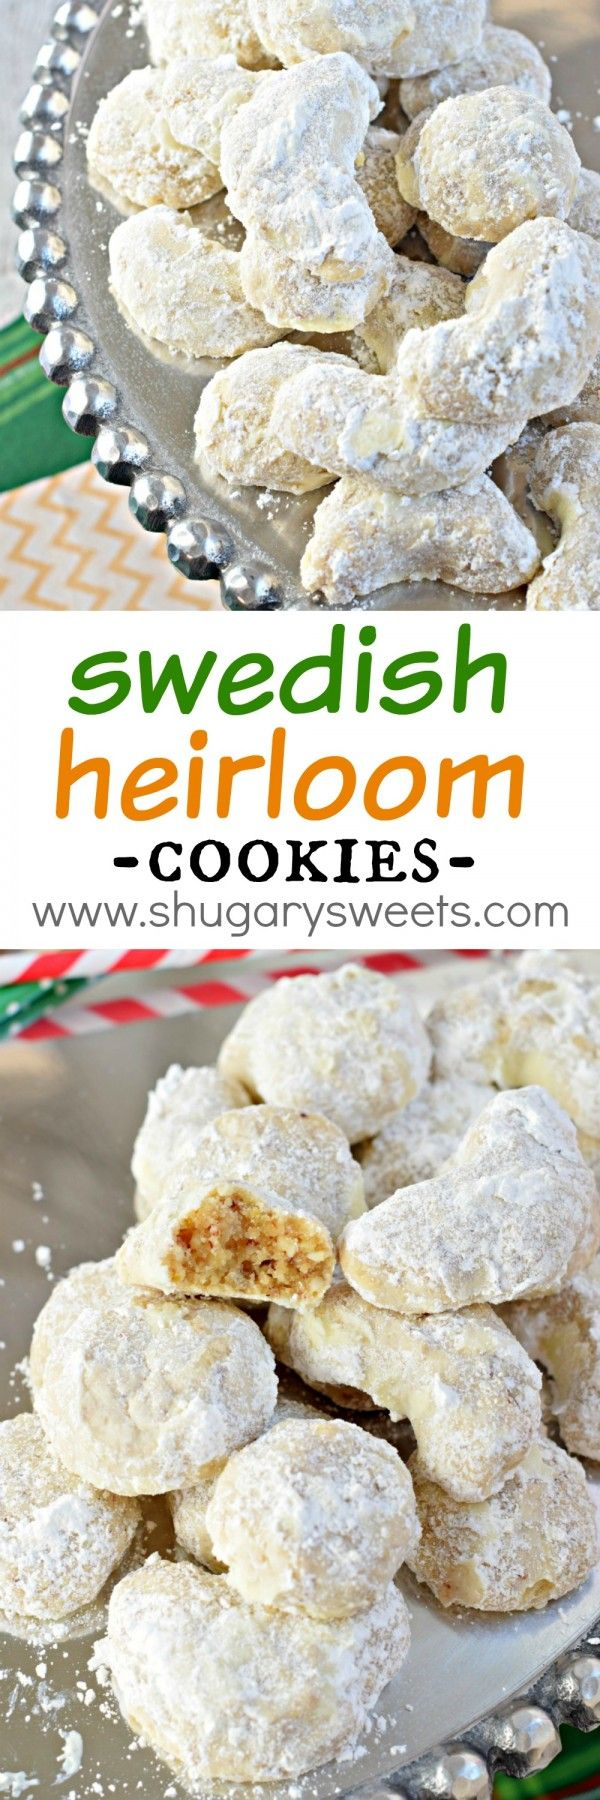 Swedish Heirloom Cookies Recipe Other, Almonds and